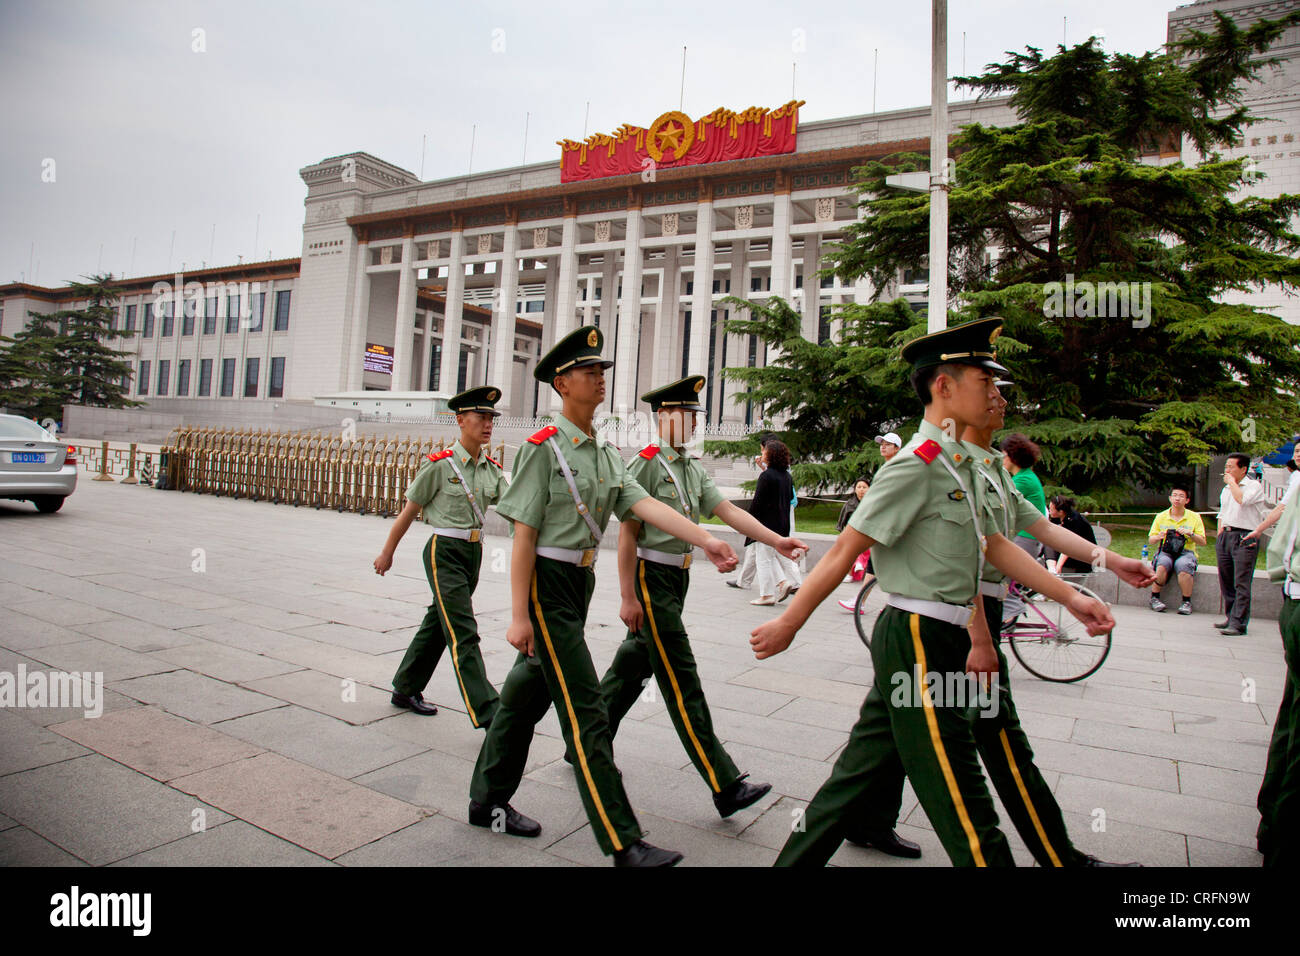 National Peoples Army Stock Photos & National Peoples Army ...